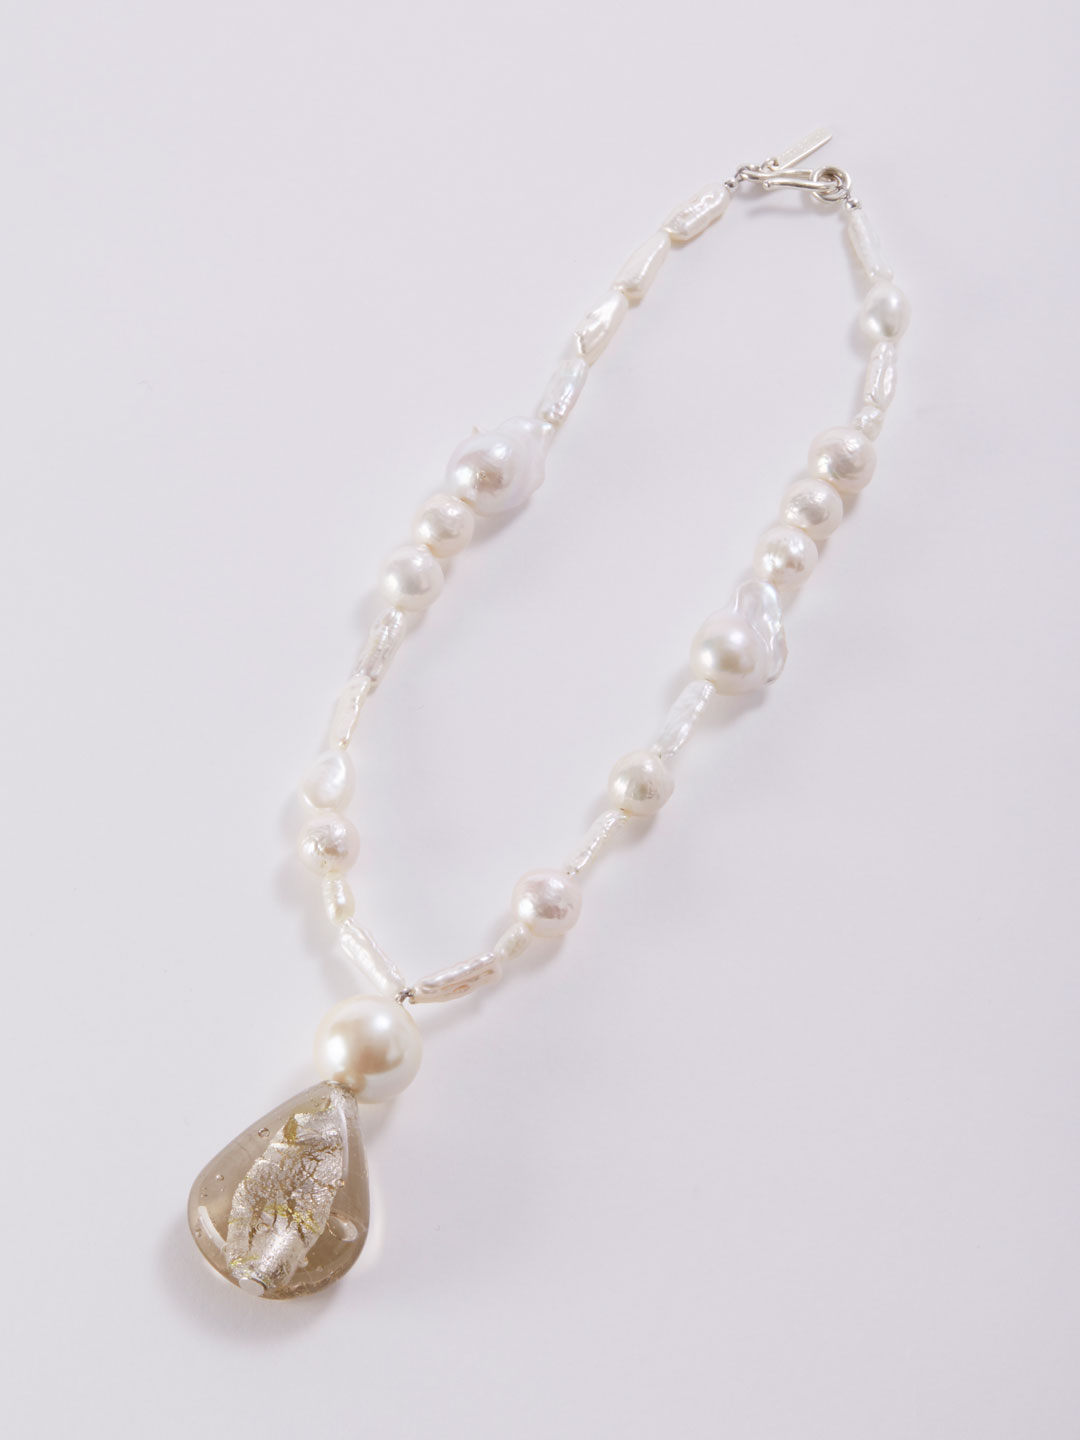 Glass Drop Neacklace   - Silver